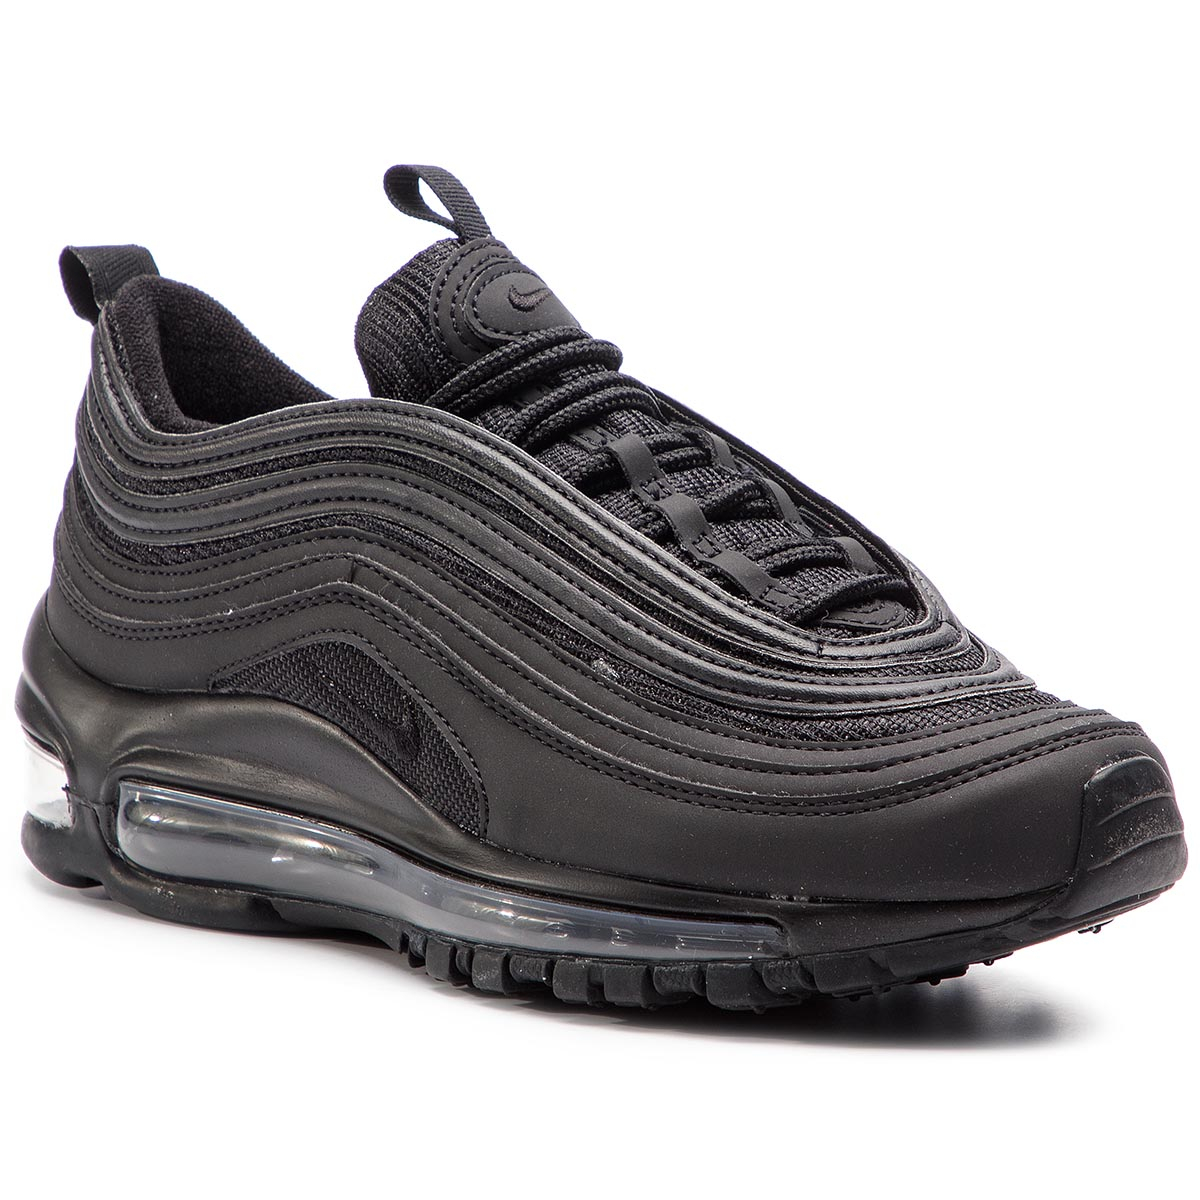 reputable site 3cbc6 cc4ed Pantofi NIKE Air Max 97 Og Bg AV4149 001 Black Black Black